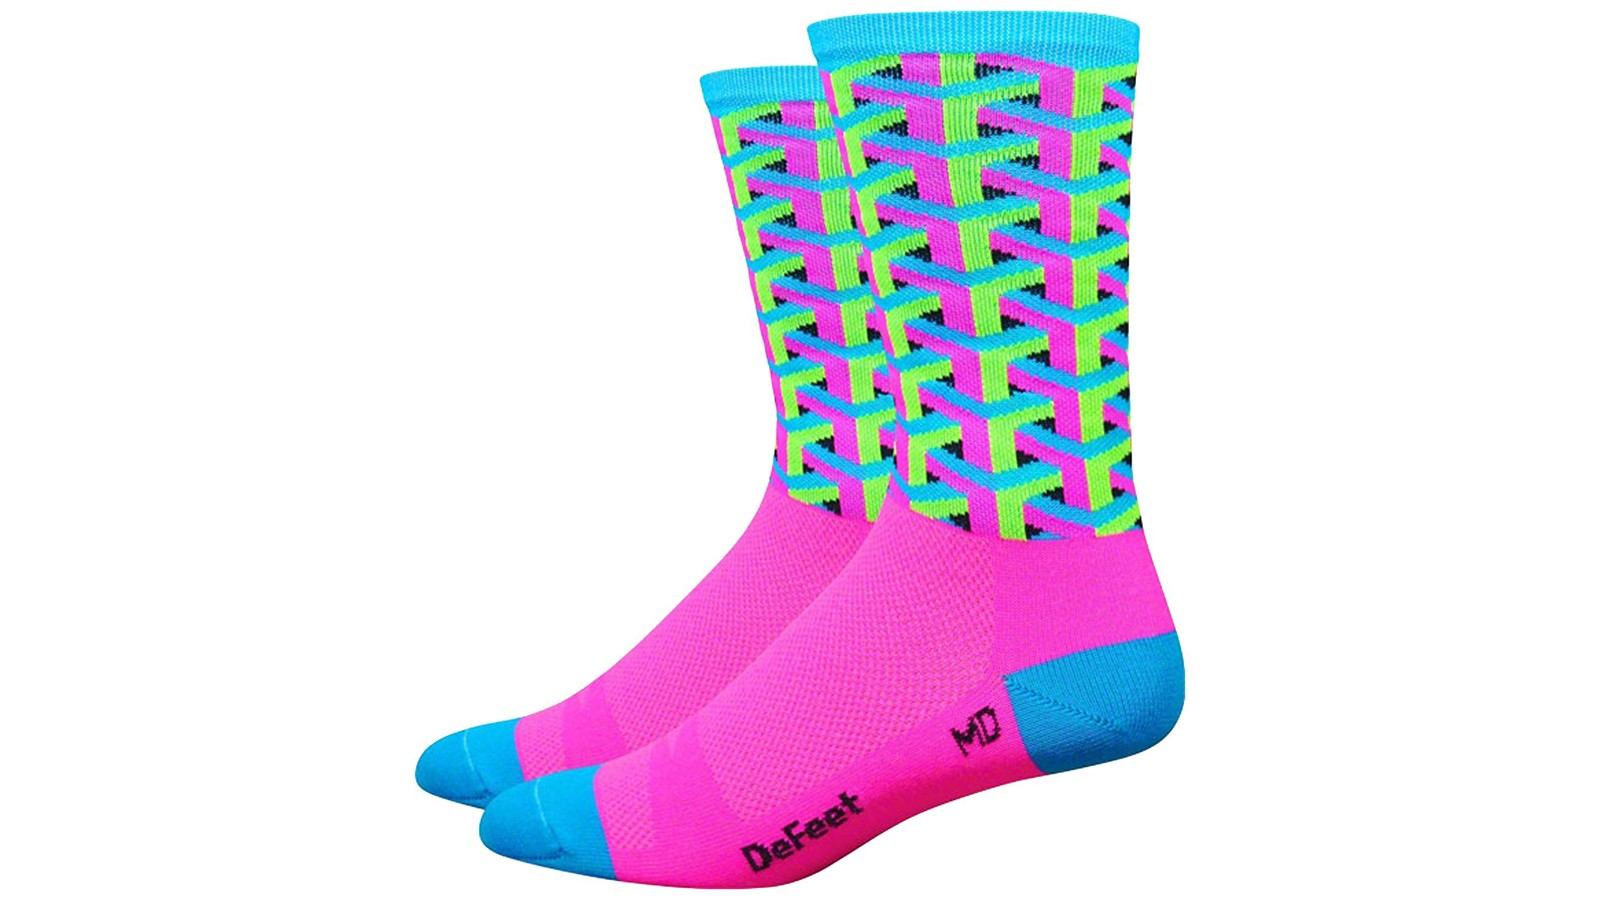 Socks are an essential part of the cycling uniform